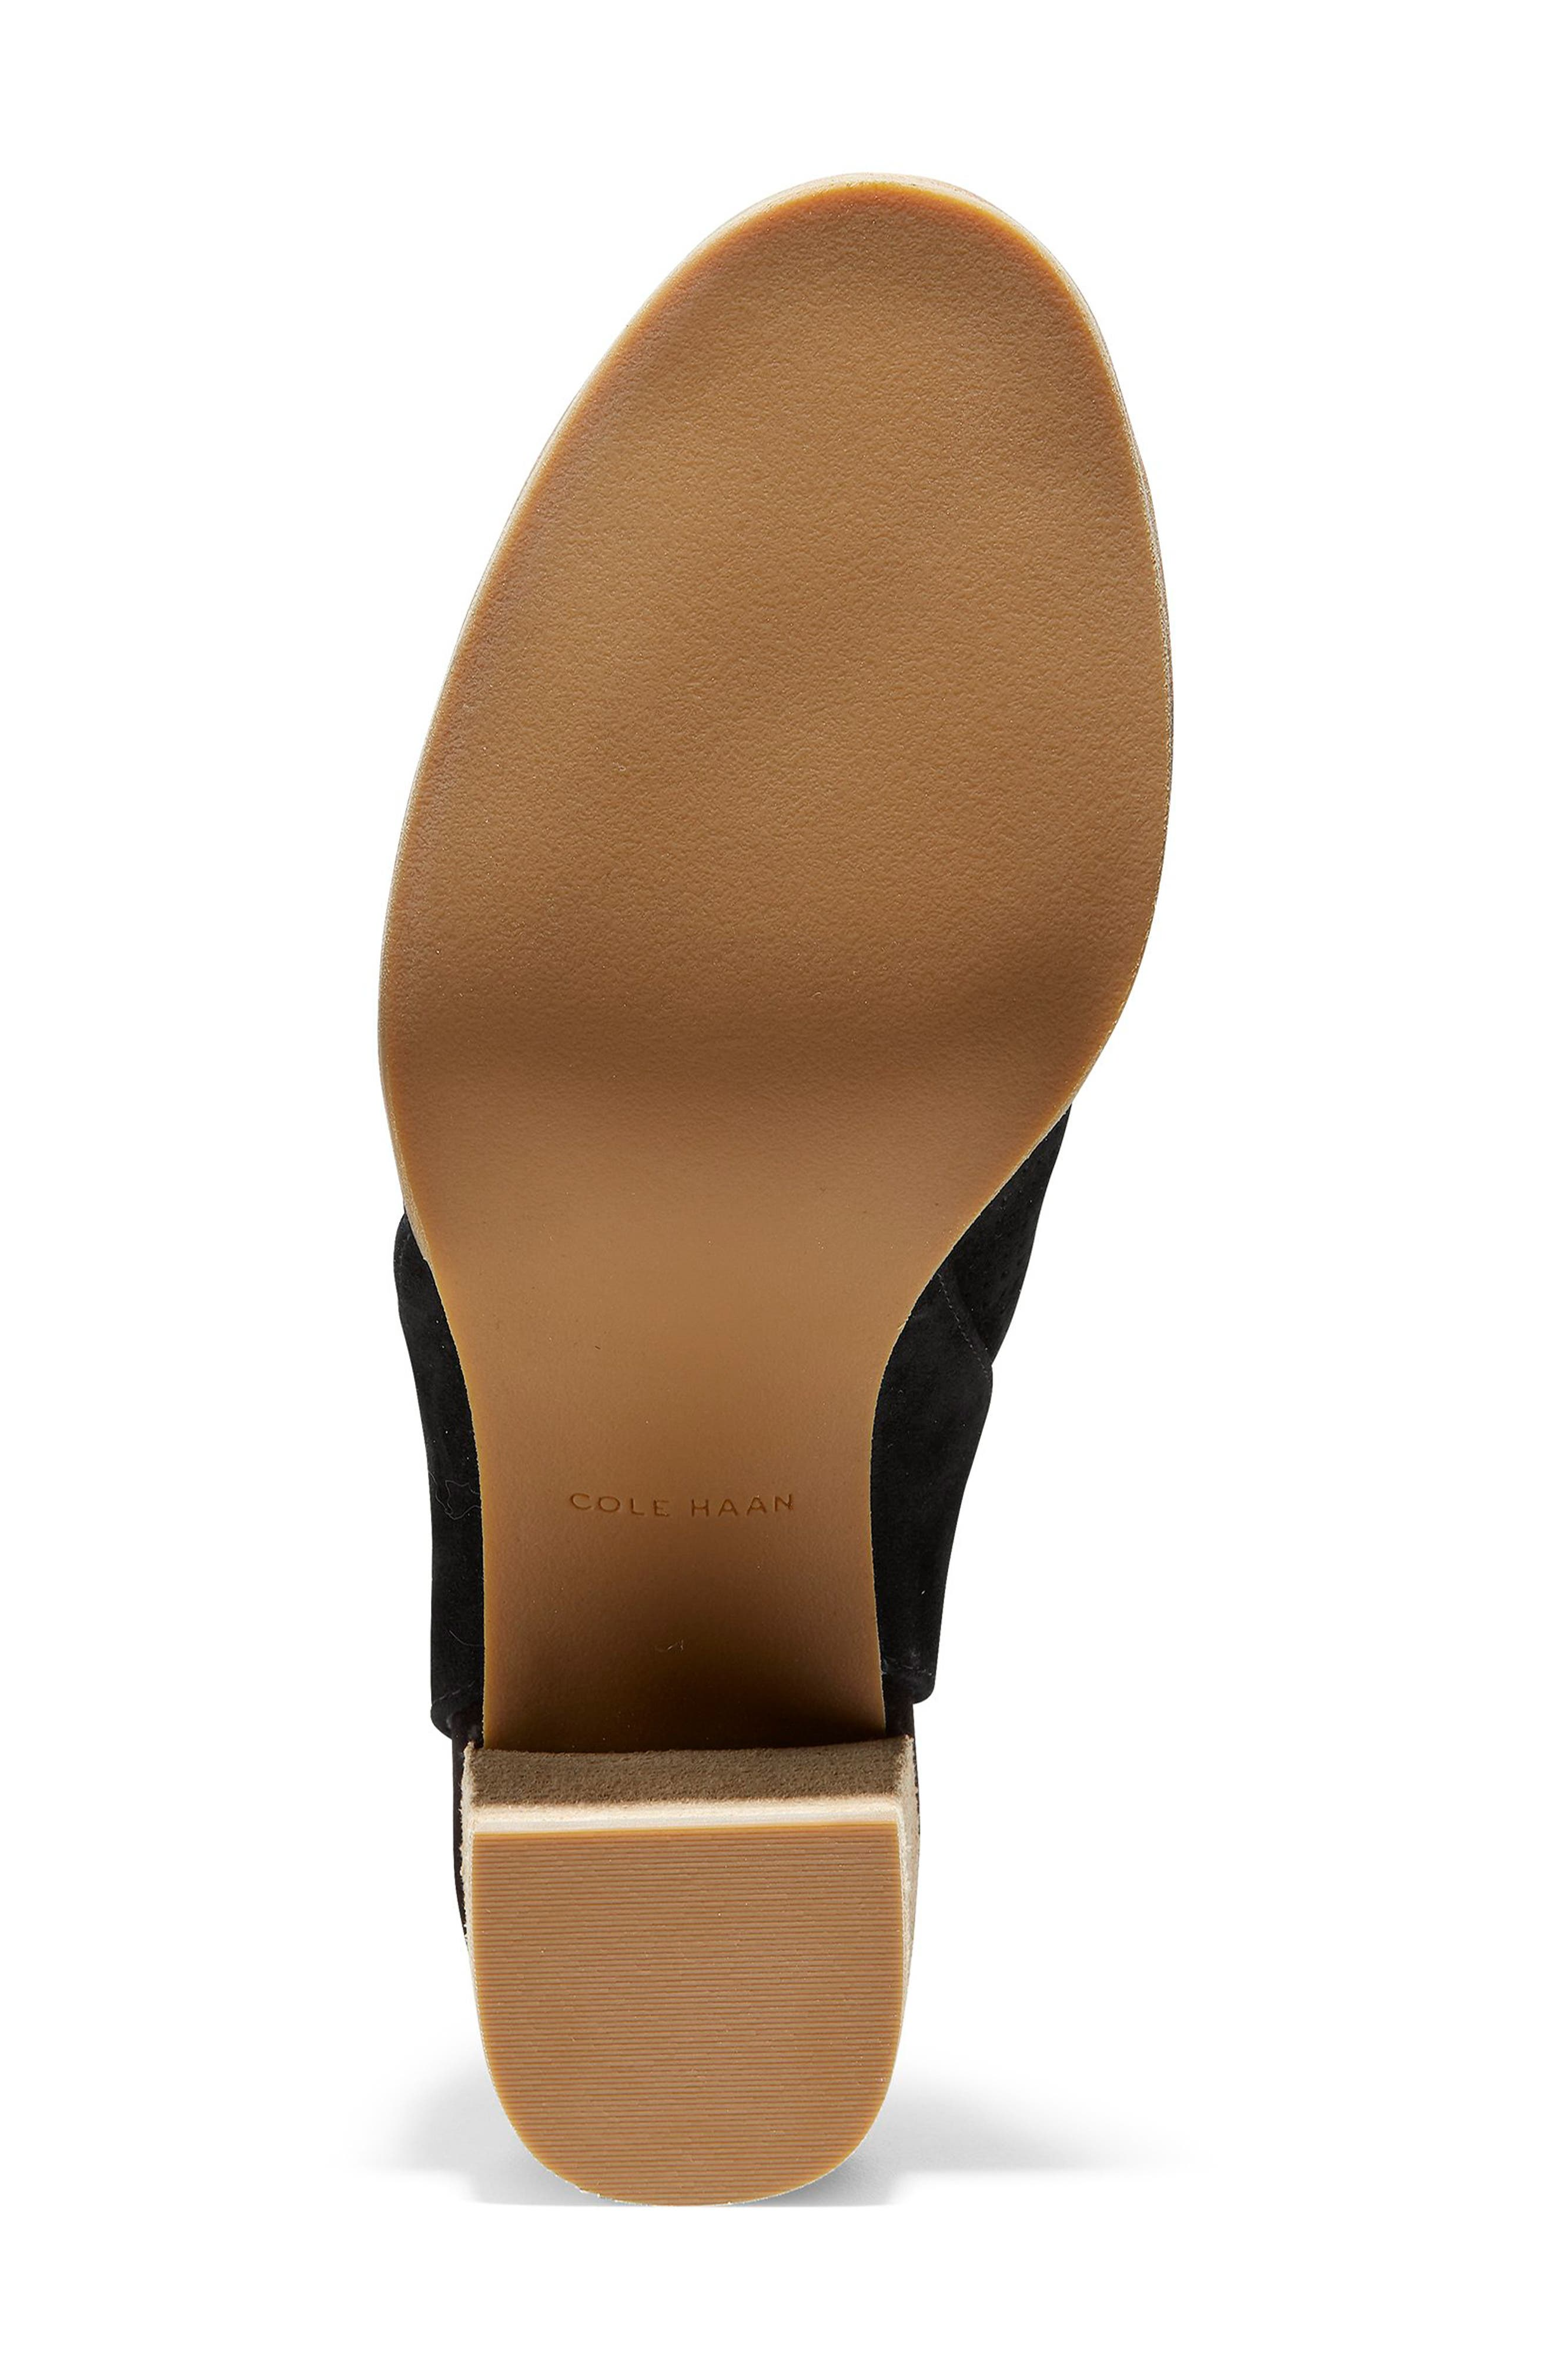 COLE HAAN, Callista Perforated Slingback Sandal, Alternate thumbnail 6, color, BLACK PERF SUEDE